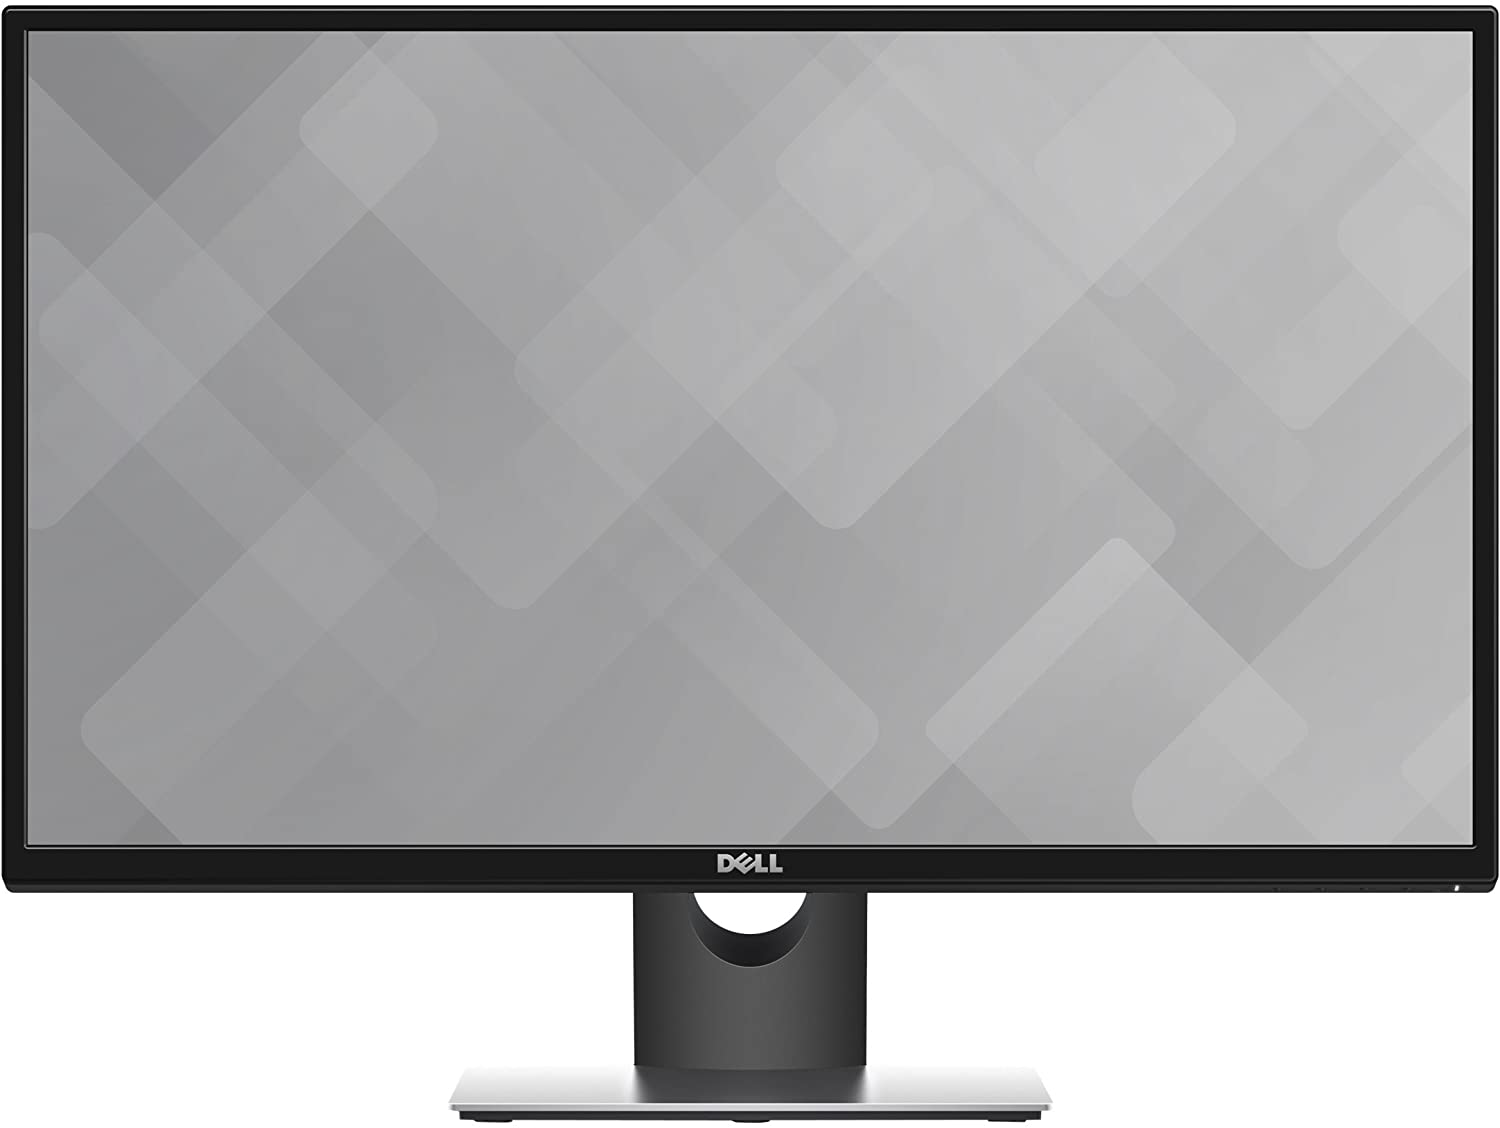 The Best Dell Se2717hr 27 inch Full HD Monitor Review for 2020